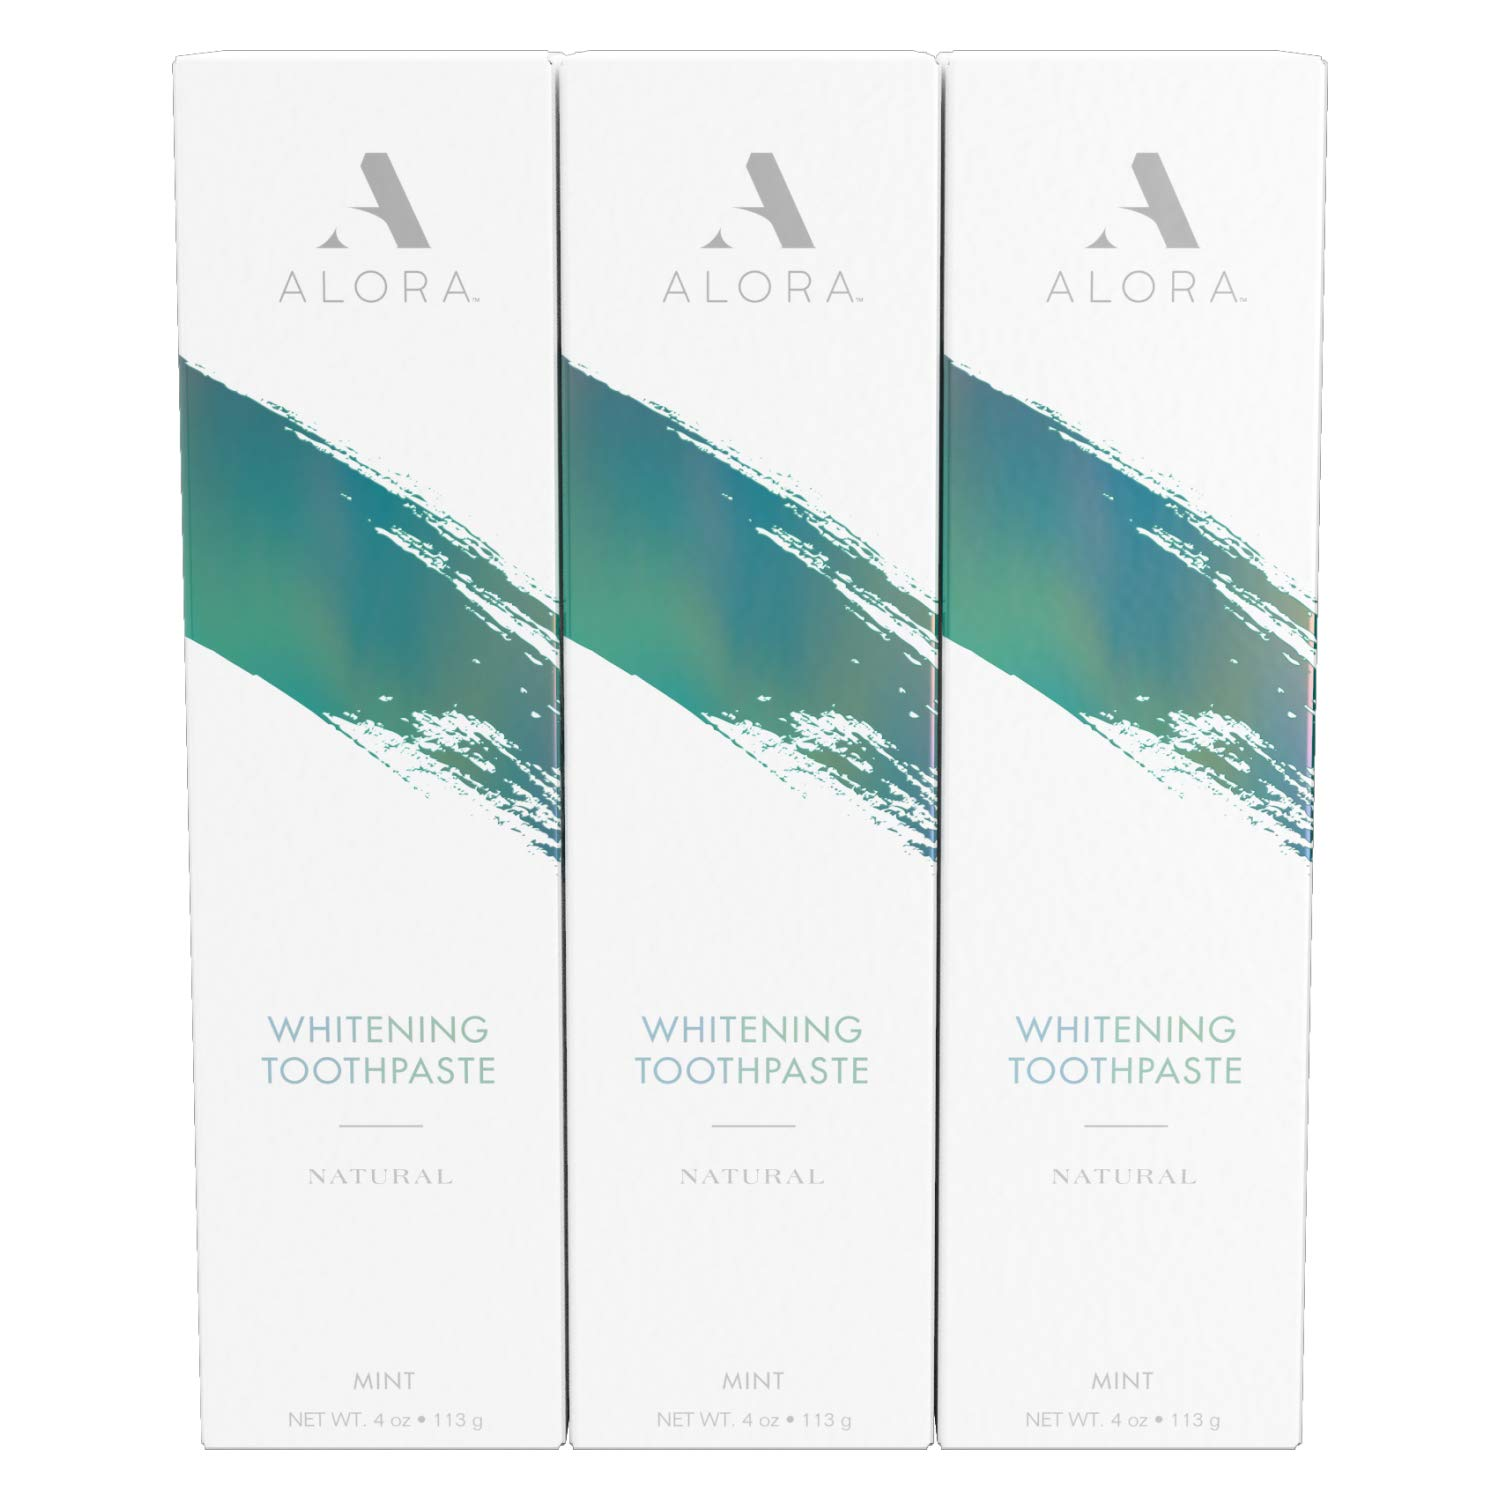 Alora Natural Whitening Toothpaste, Fresh Mint, 4 Oz (Pack of 3) - Fluoride Free